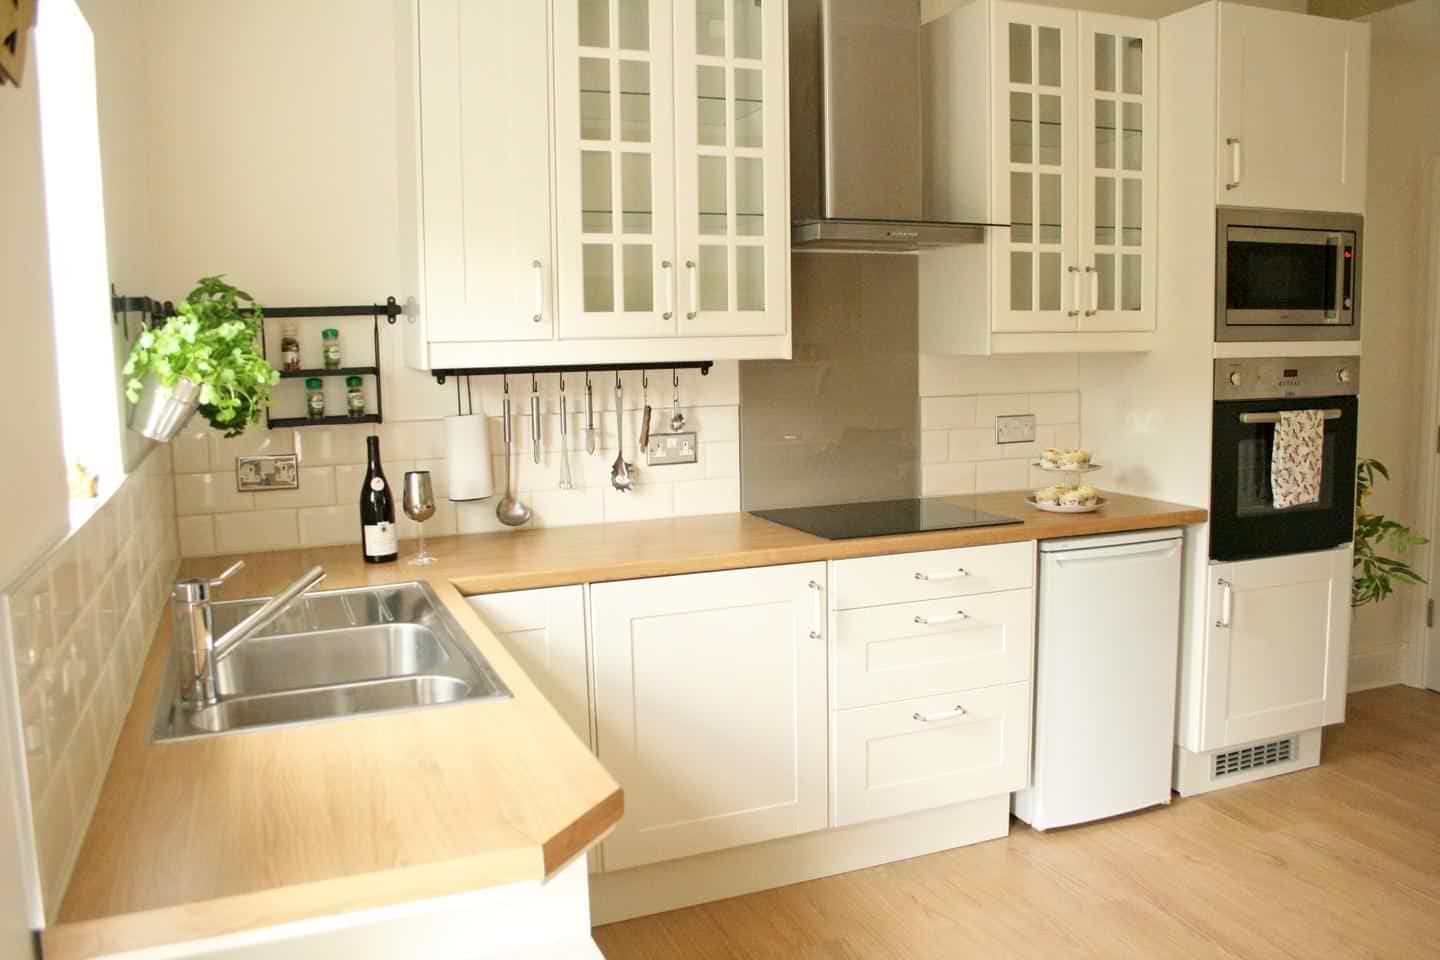 Cream Kitchen Photos For Design Inspiration For Your